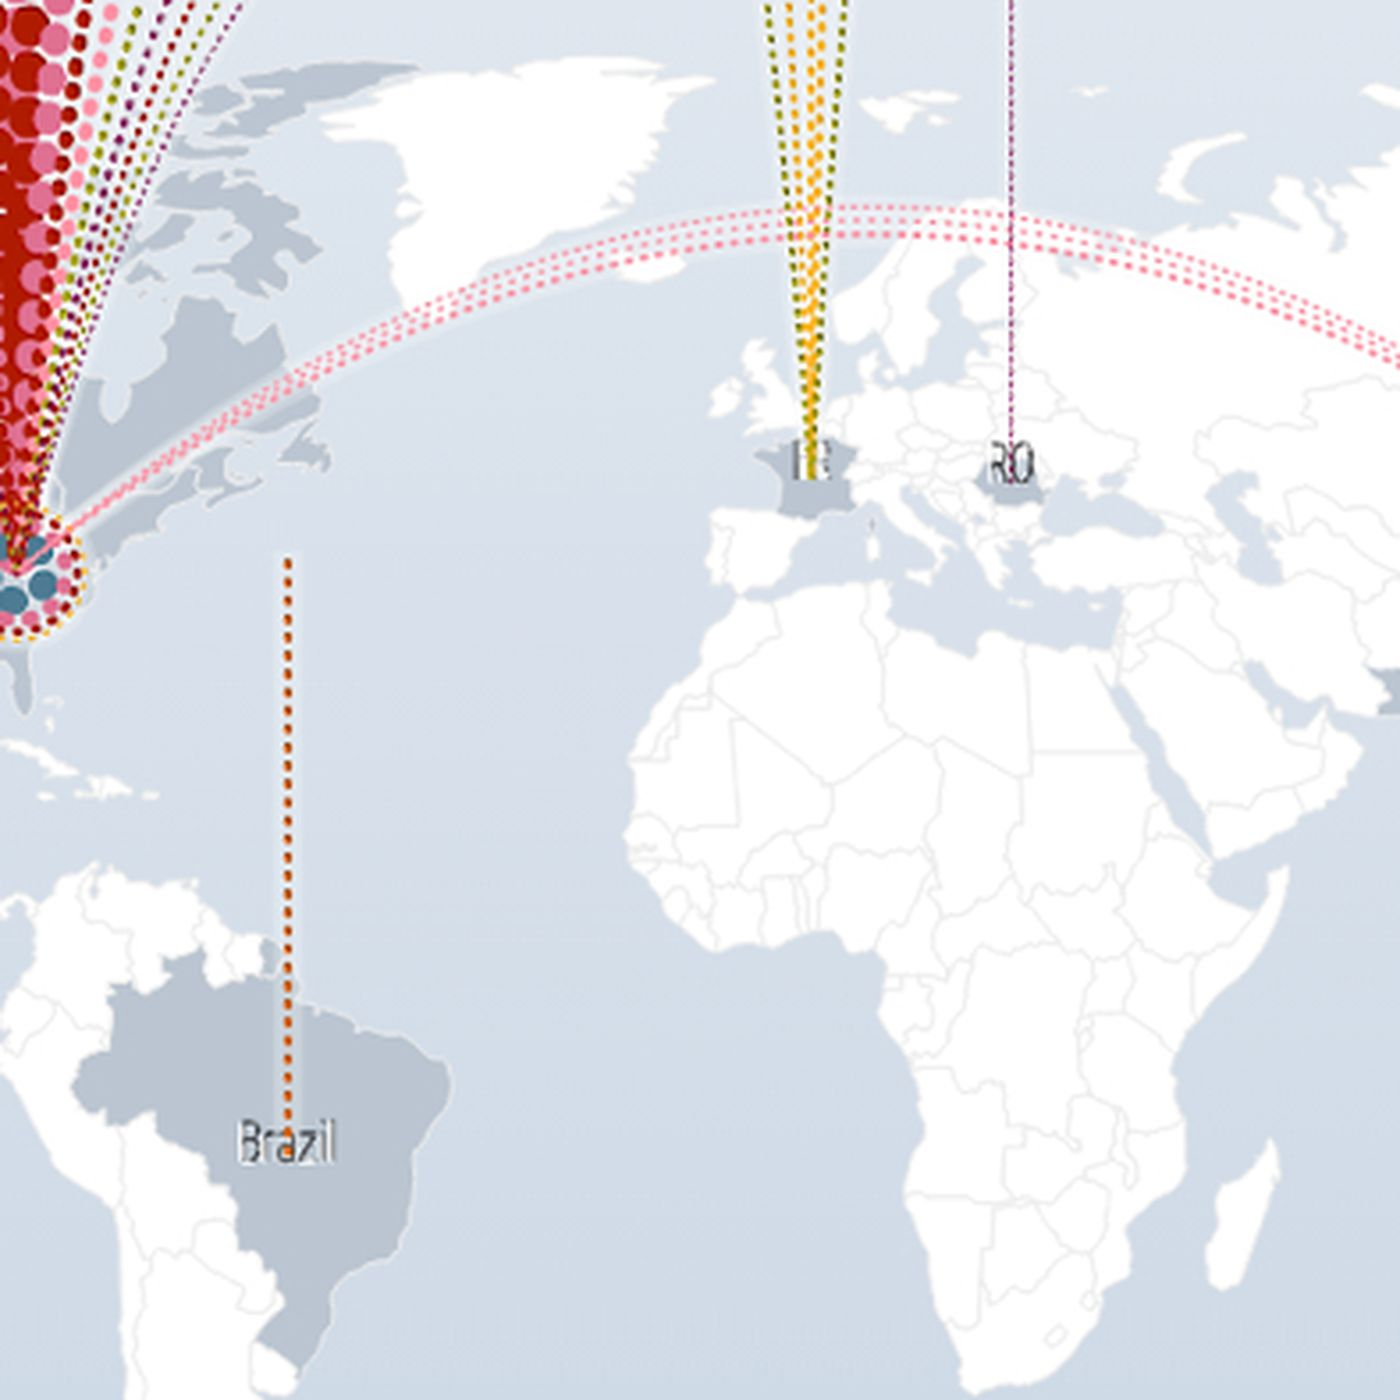 Google launches new anti-DDoS service called 'Project Shield' - The